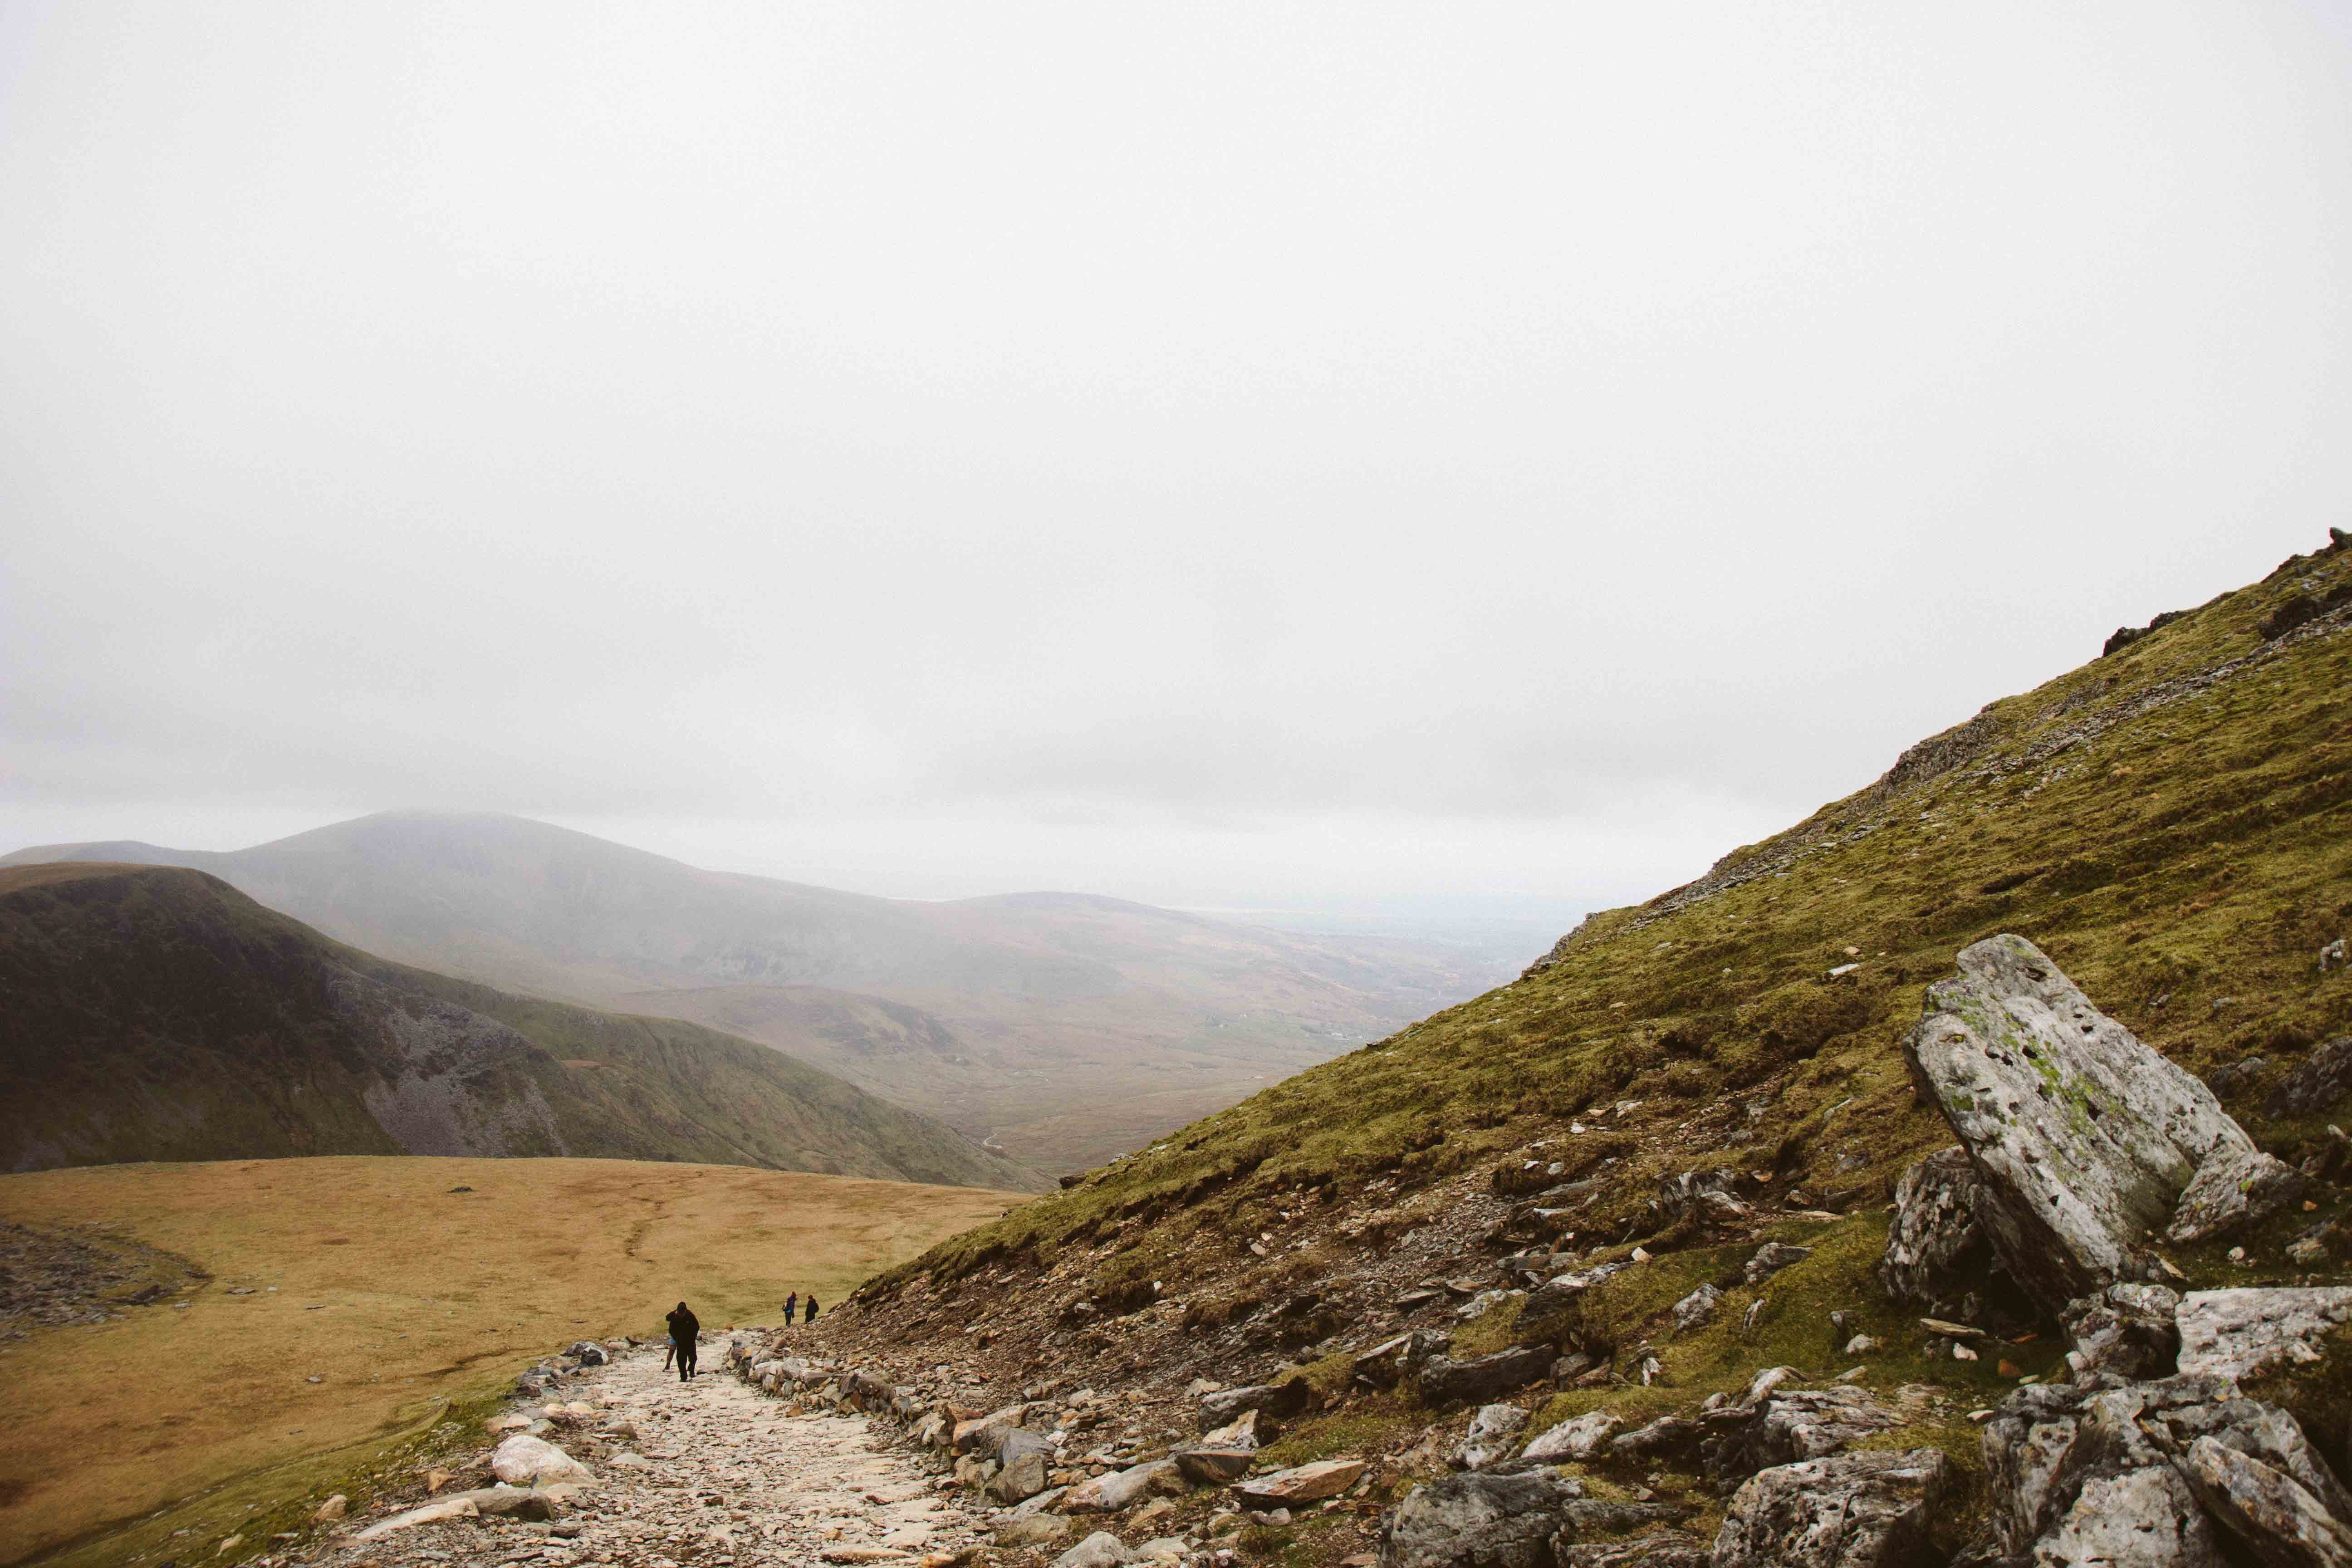 Hikers climbing up a rocky path at the foot of a green hill on a cloudy day